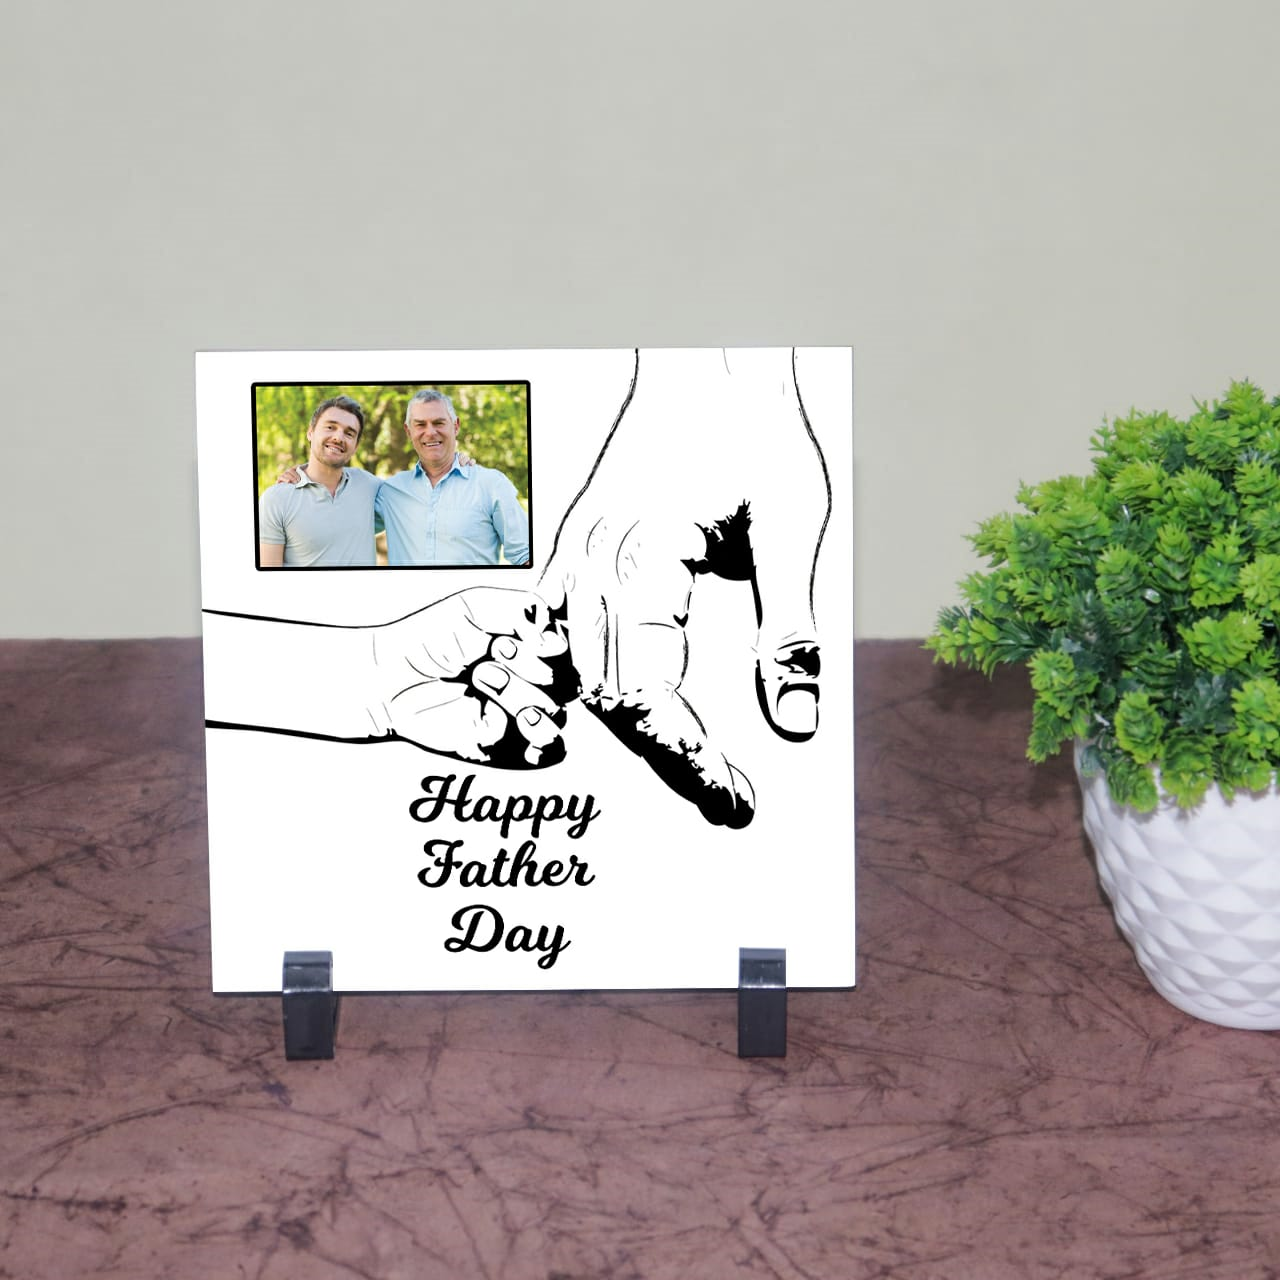 Happy Father Day Personilzed Tile